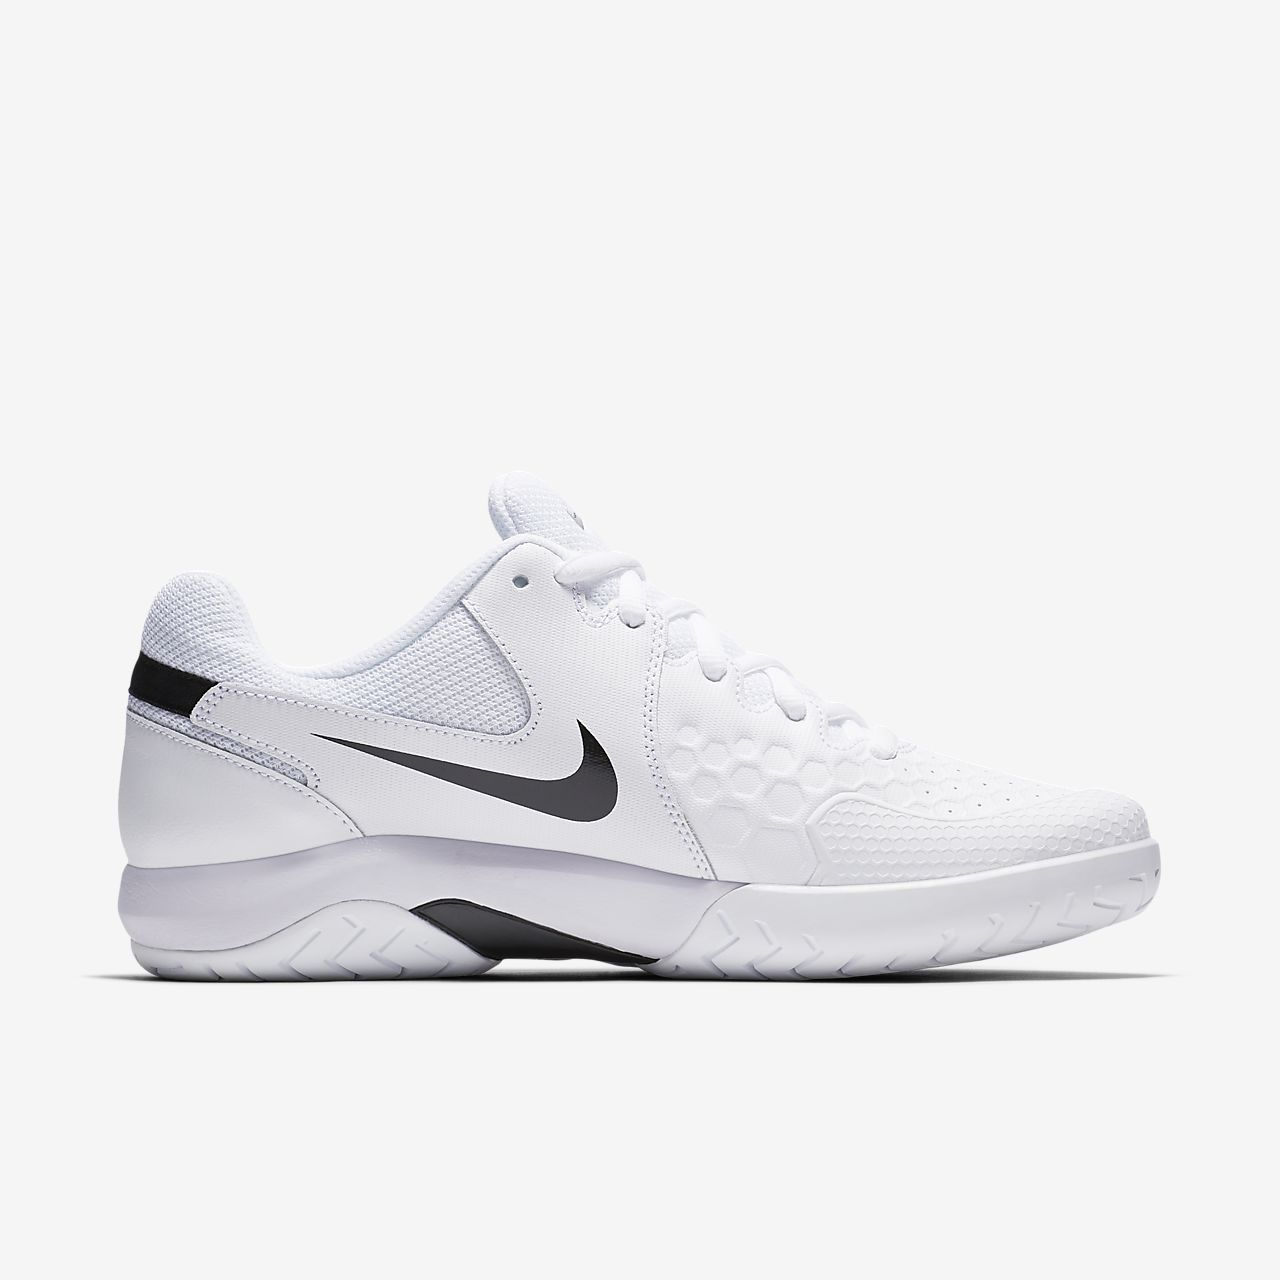 54be33db5b nikecourt-air-zoom-resistance-hard-court-tennis-shoe-rJTGAGEP.jpg